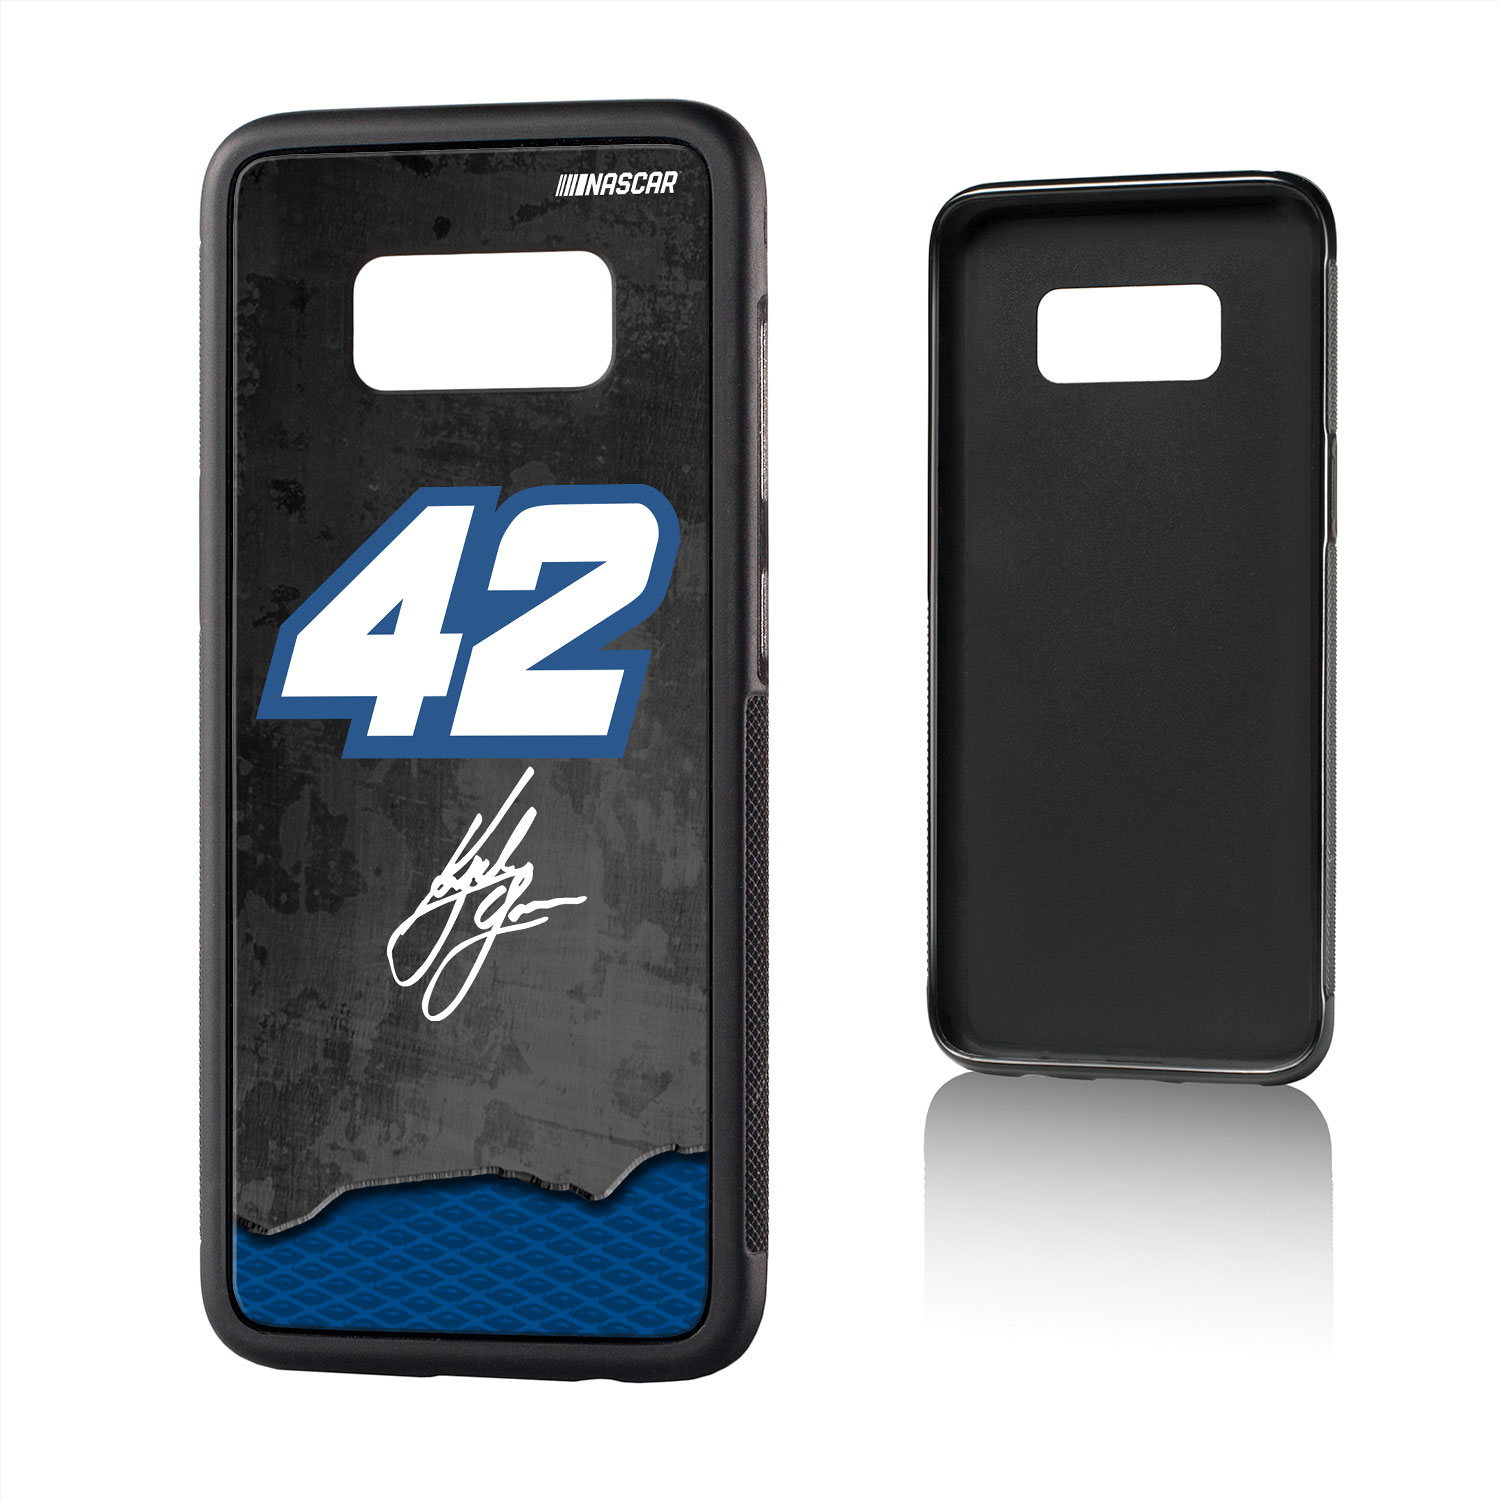 Kyle Larson Fast Bump Case for Galaxy S8